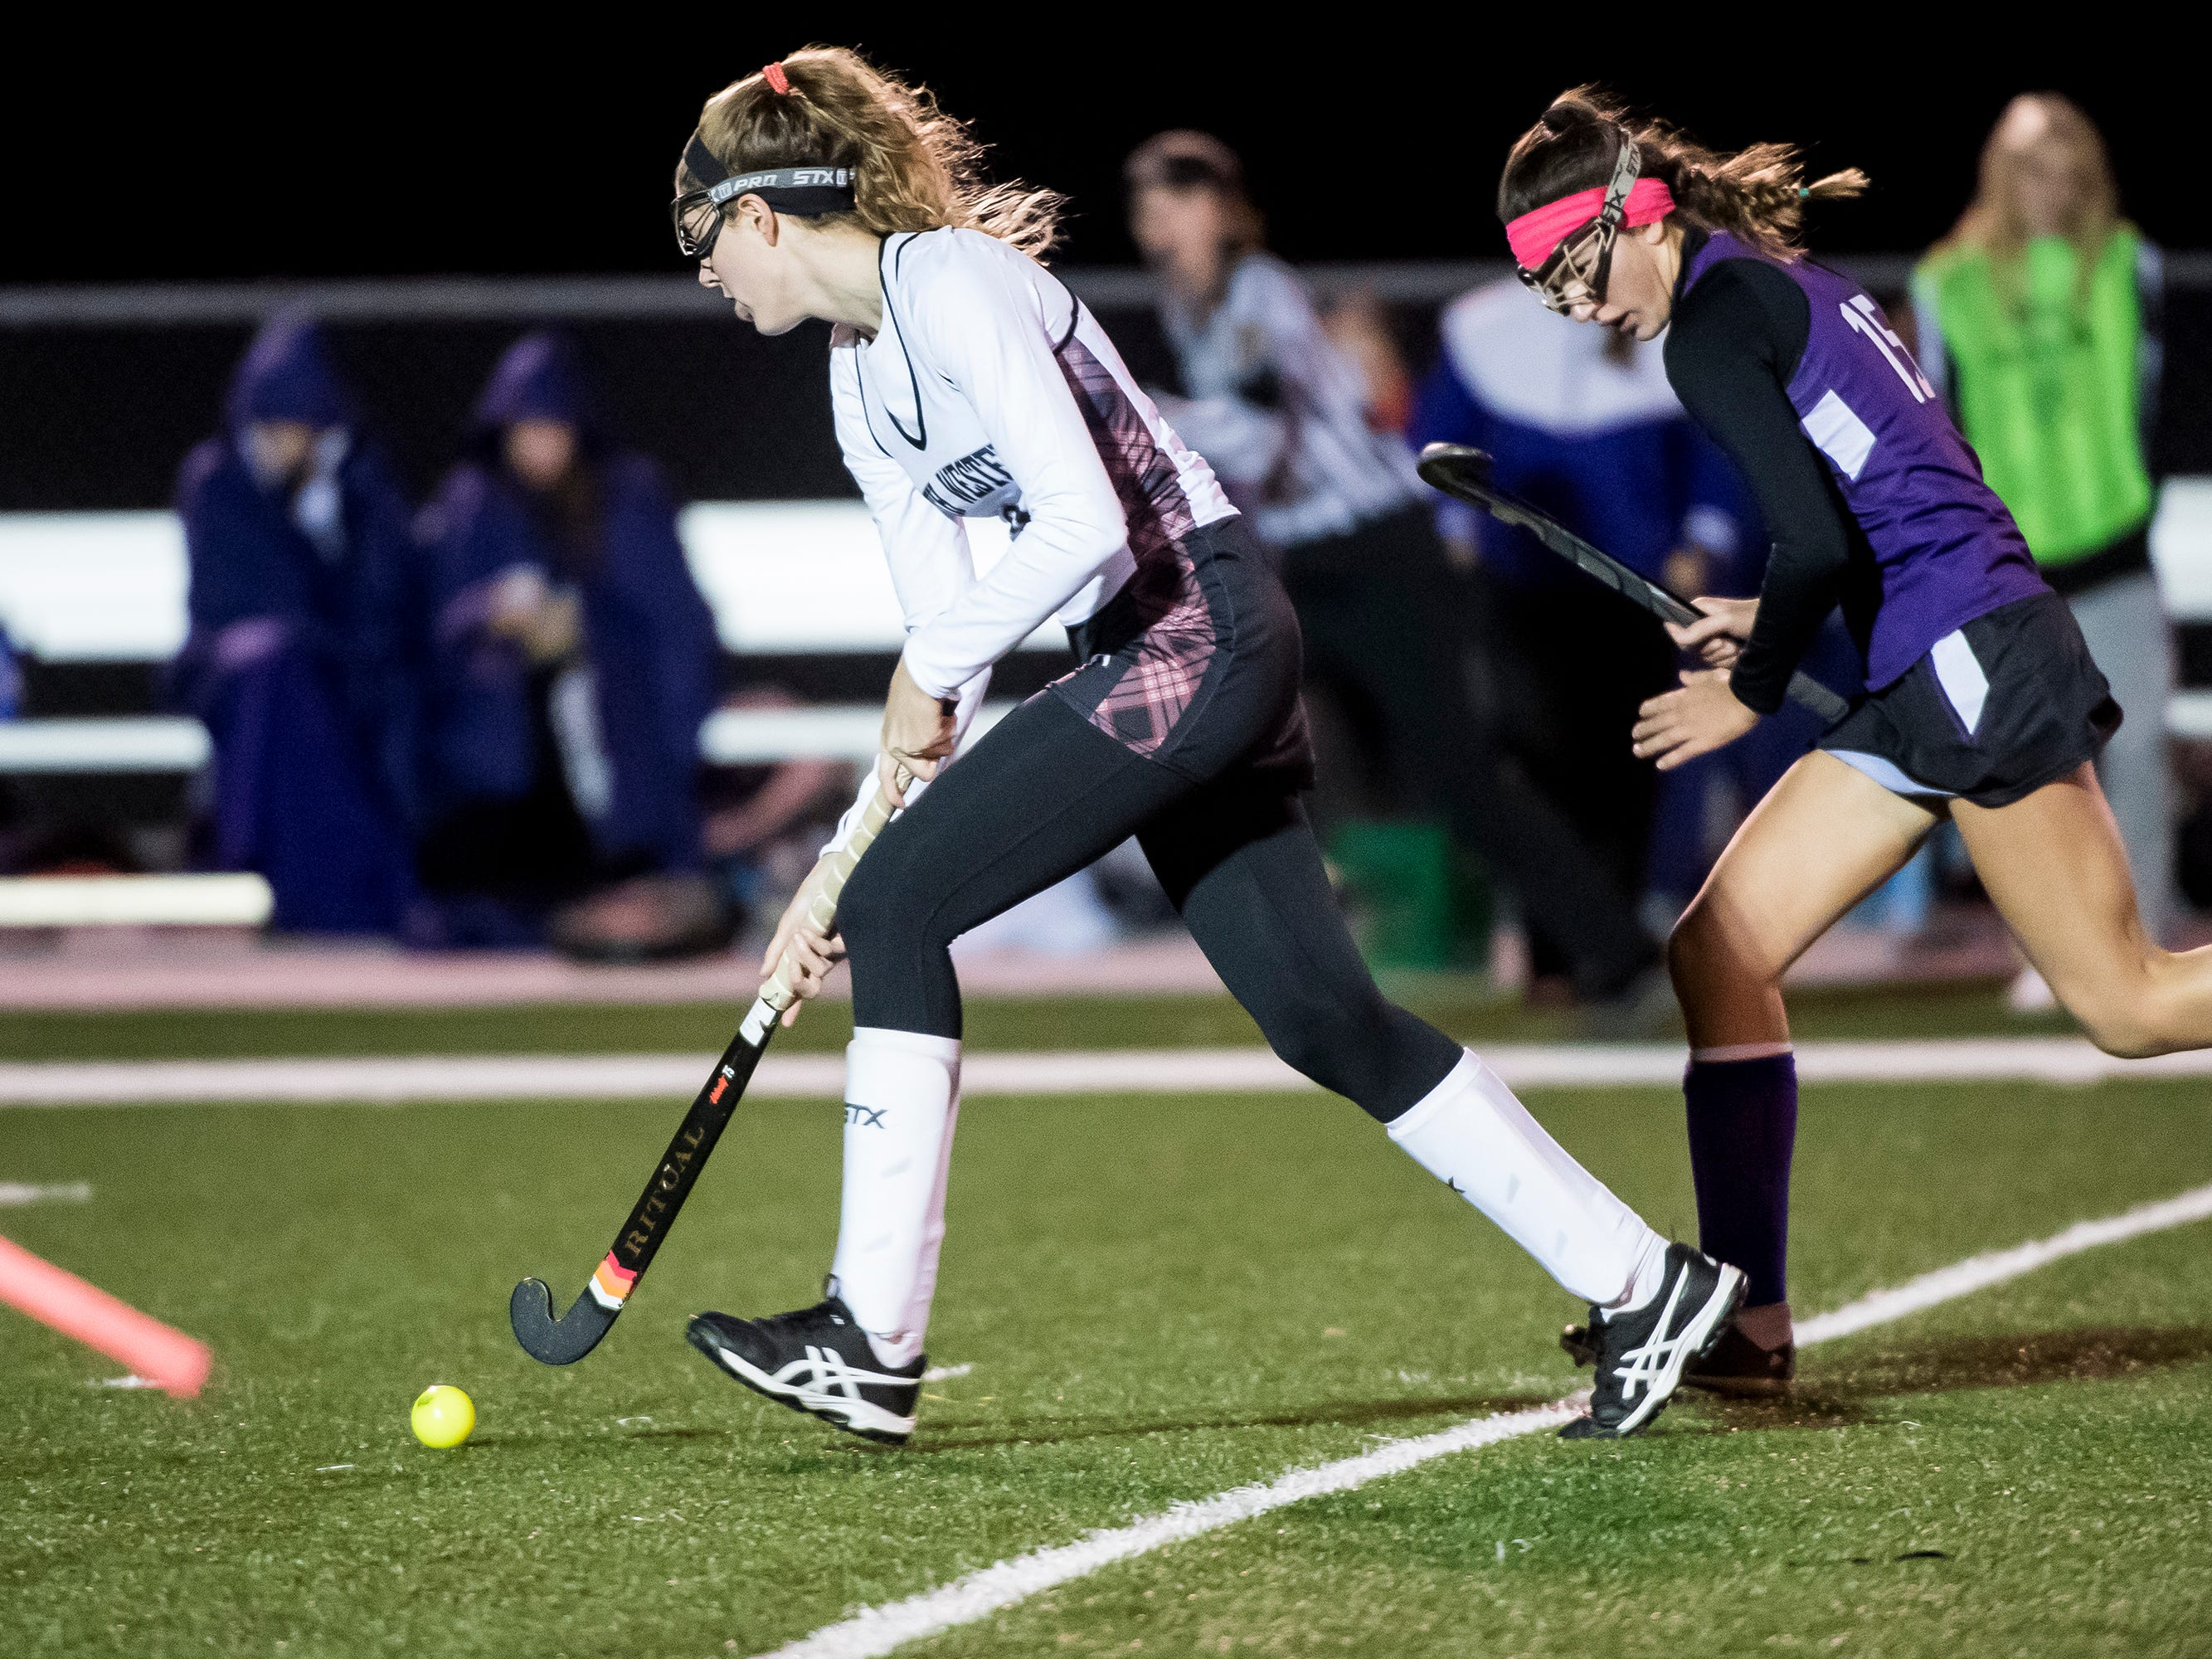 Action between South Western and Northern York during a PIAA District III first round game at Bermudian Springs High School on Wednesday, October 24, 2018. The Mustangs fell 4-2.